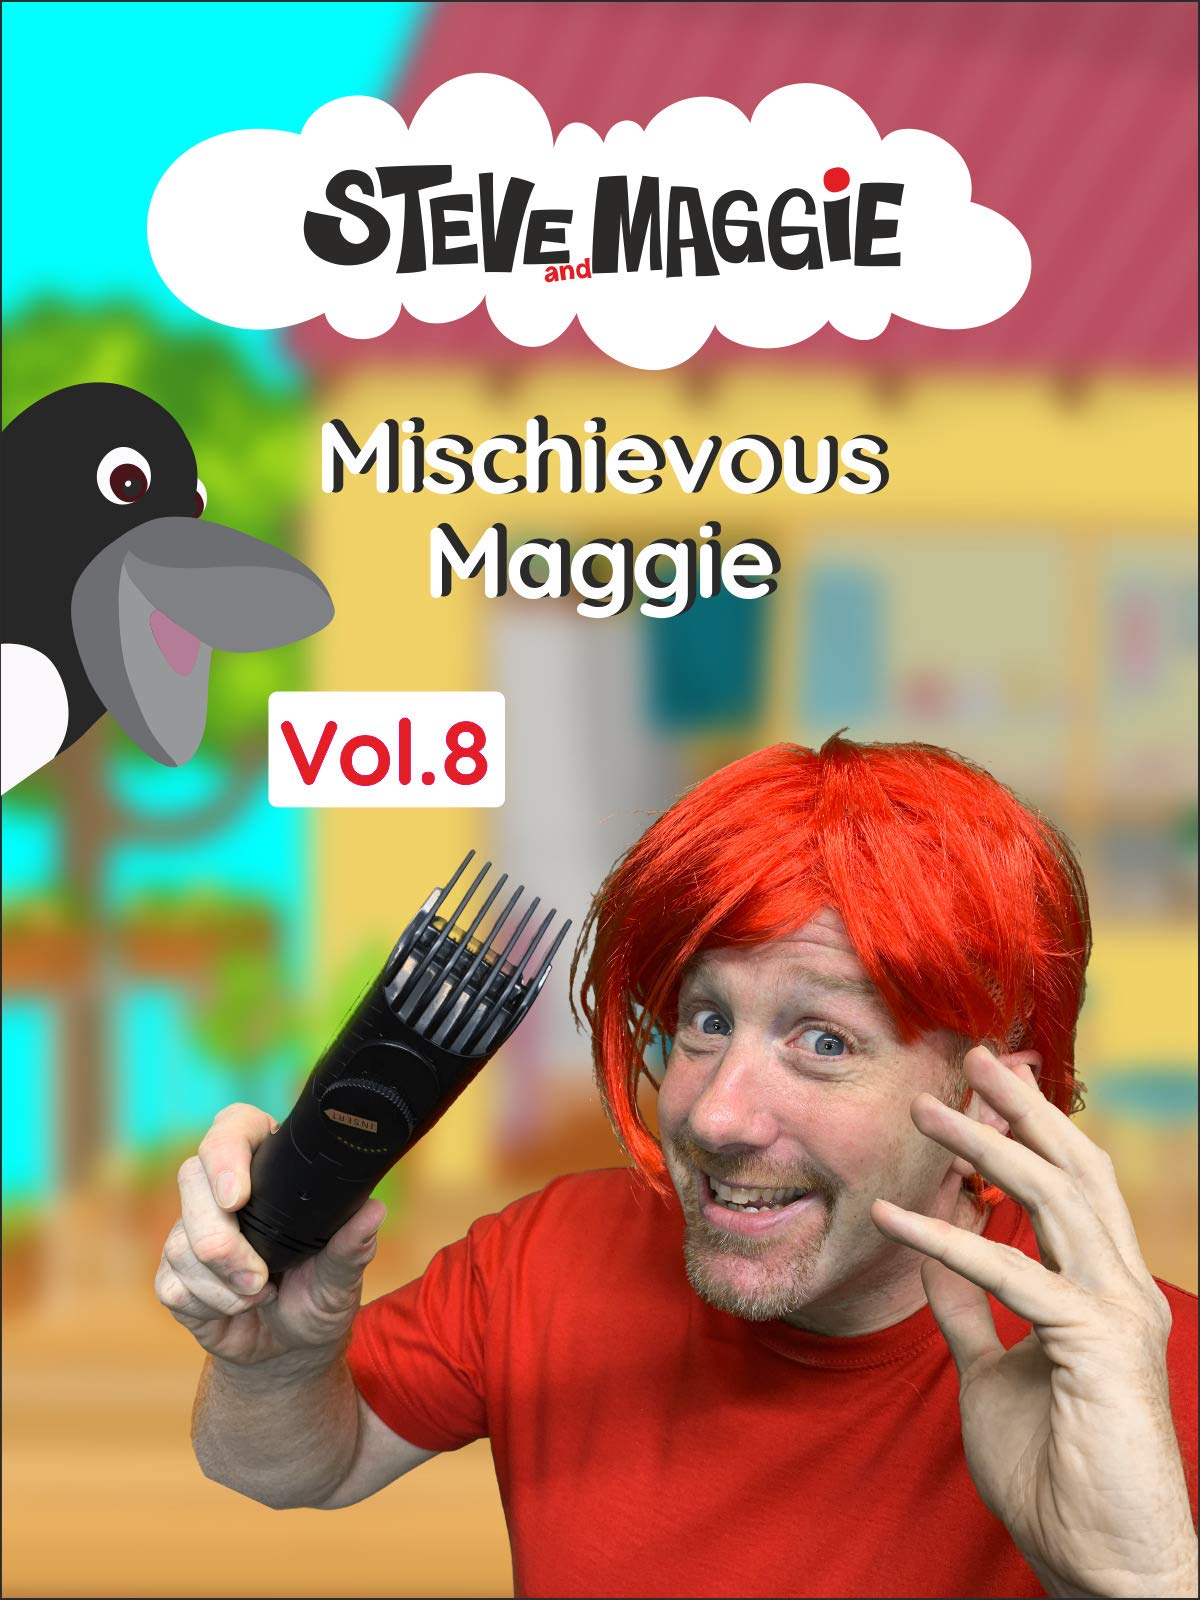 Steve and Maggie - Mischievous Maggie (Vol. 8) on Amazon Prime Video UK